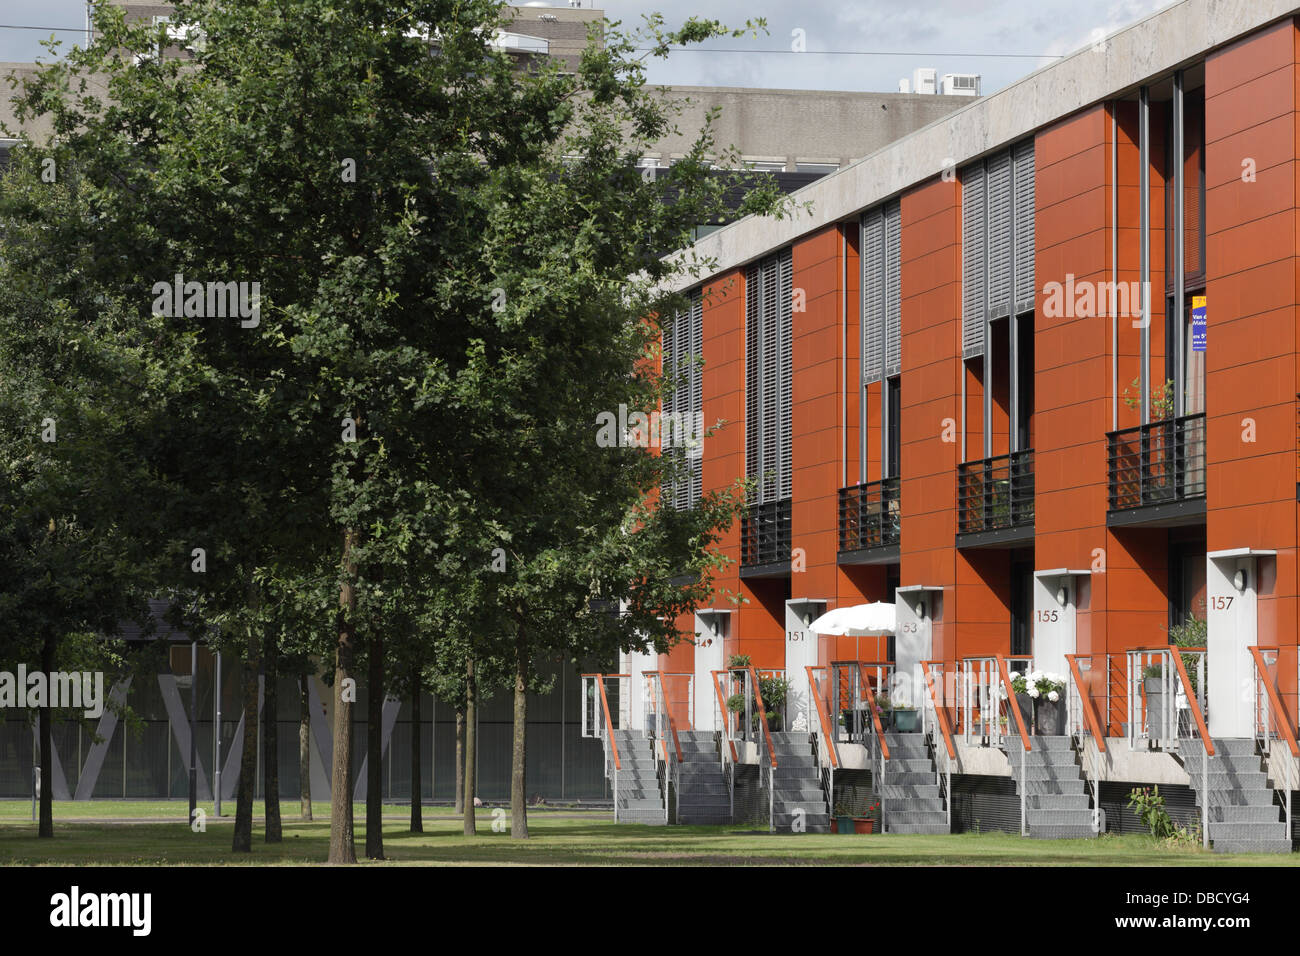 Chasse Park Housing, Breda, Netherlands. Architect: OMA, 2001. Townhouses, designed by various architects within - Stock Image